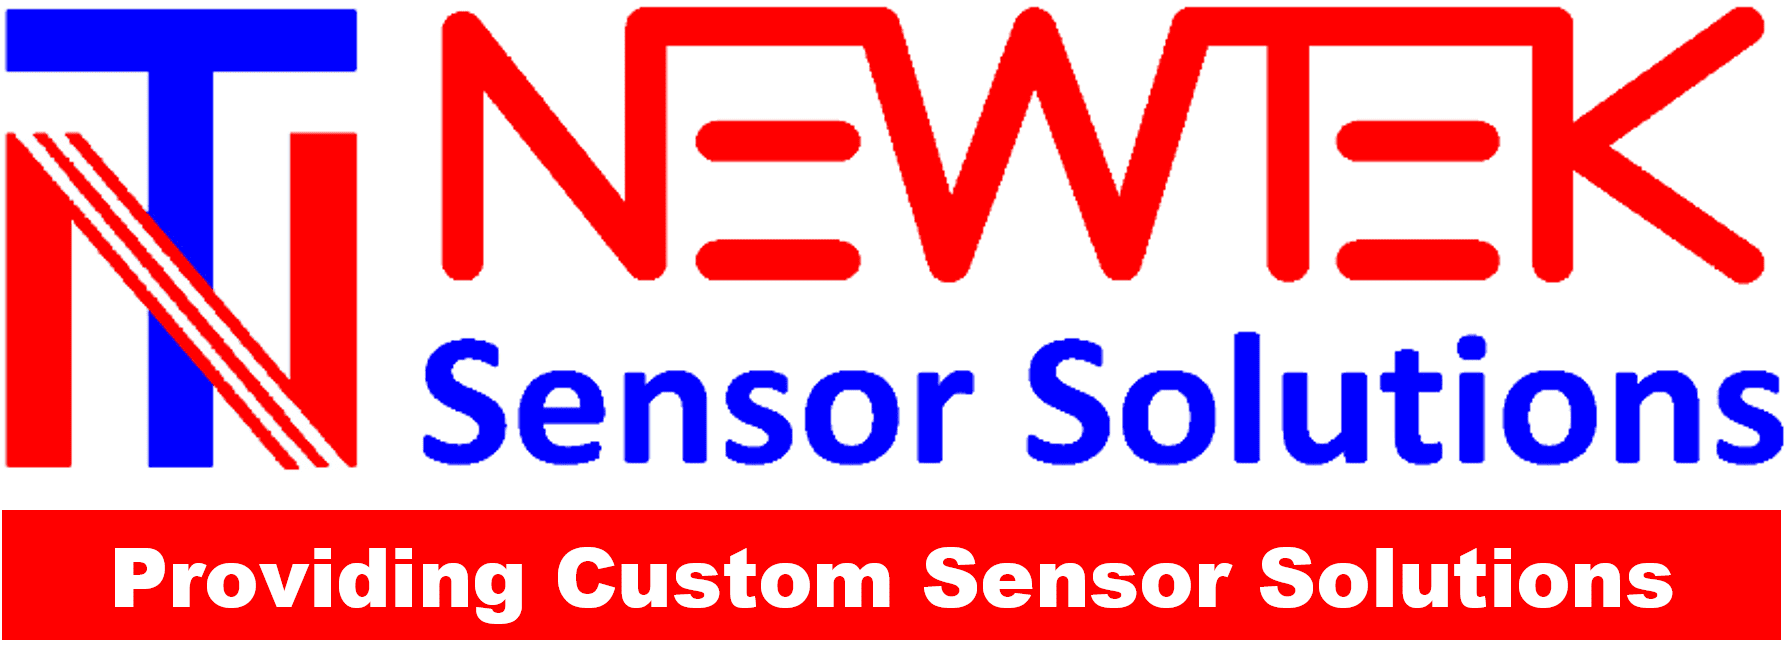 Newtek Sensors | LVDT Position Sensors and Signal Conditioners